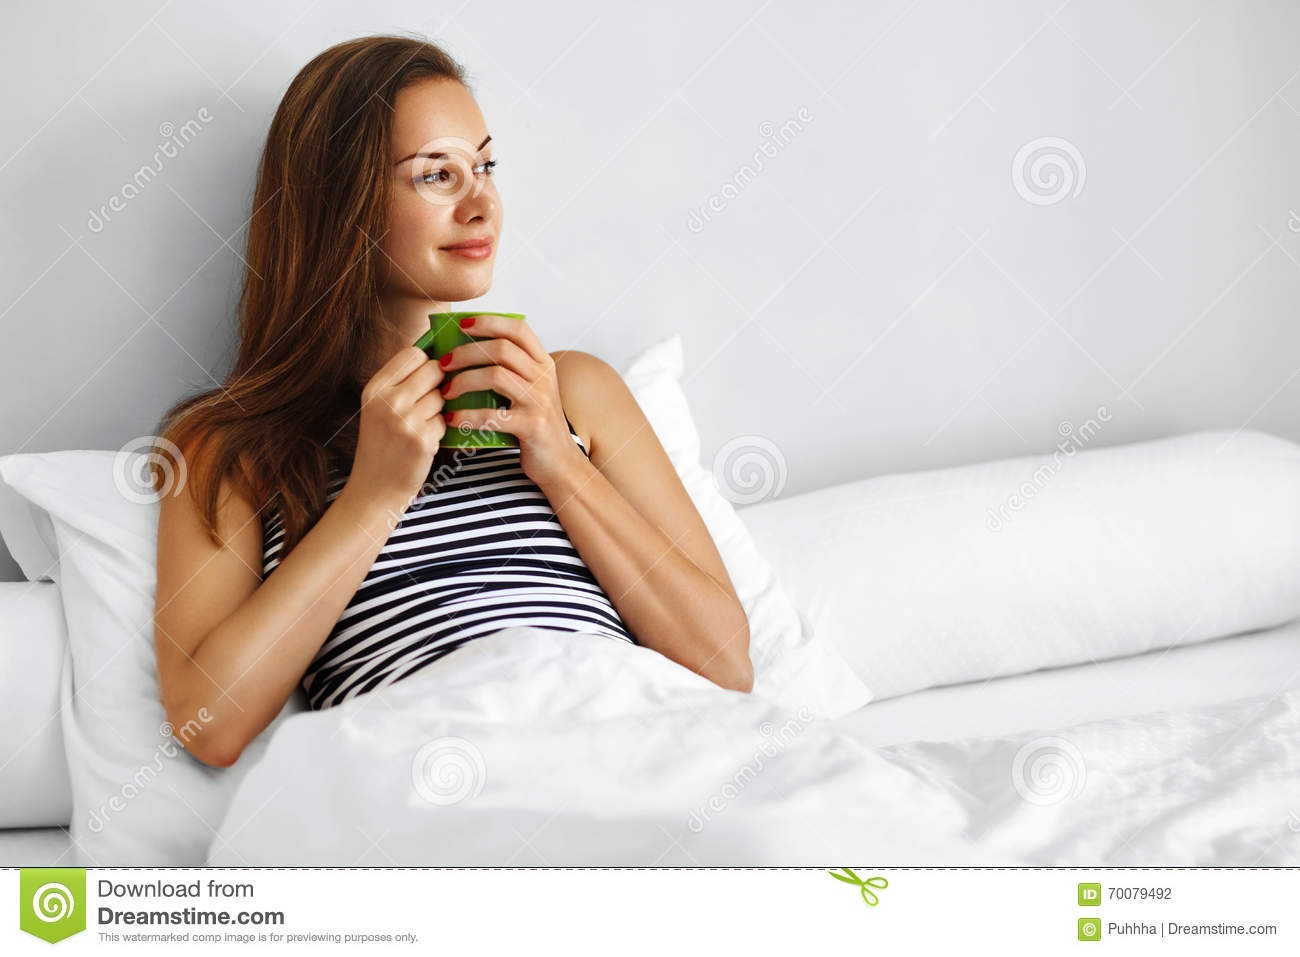 Drink Morning Tea. Woman Drinking Beverage In Bed. Healthy Lifesyle